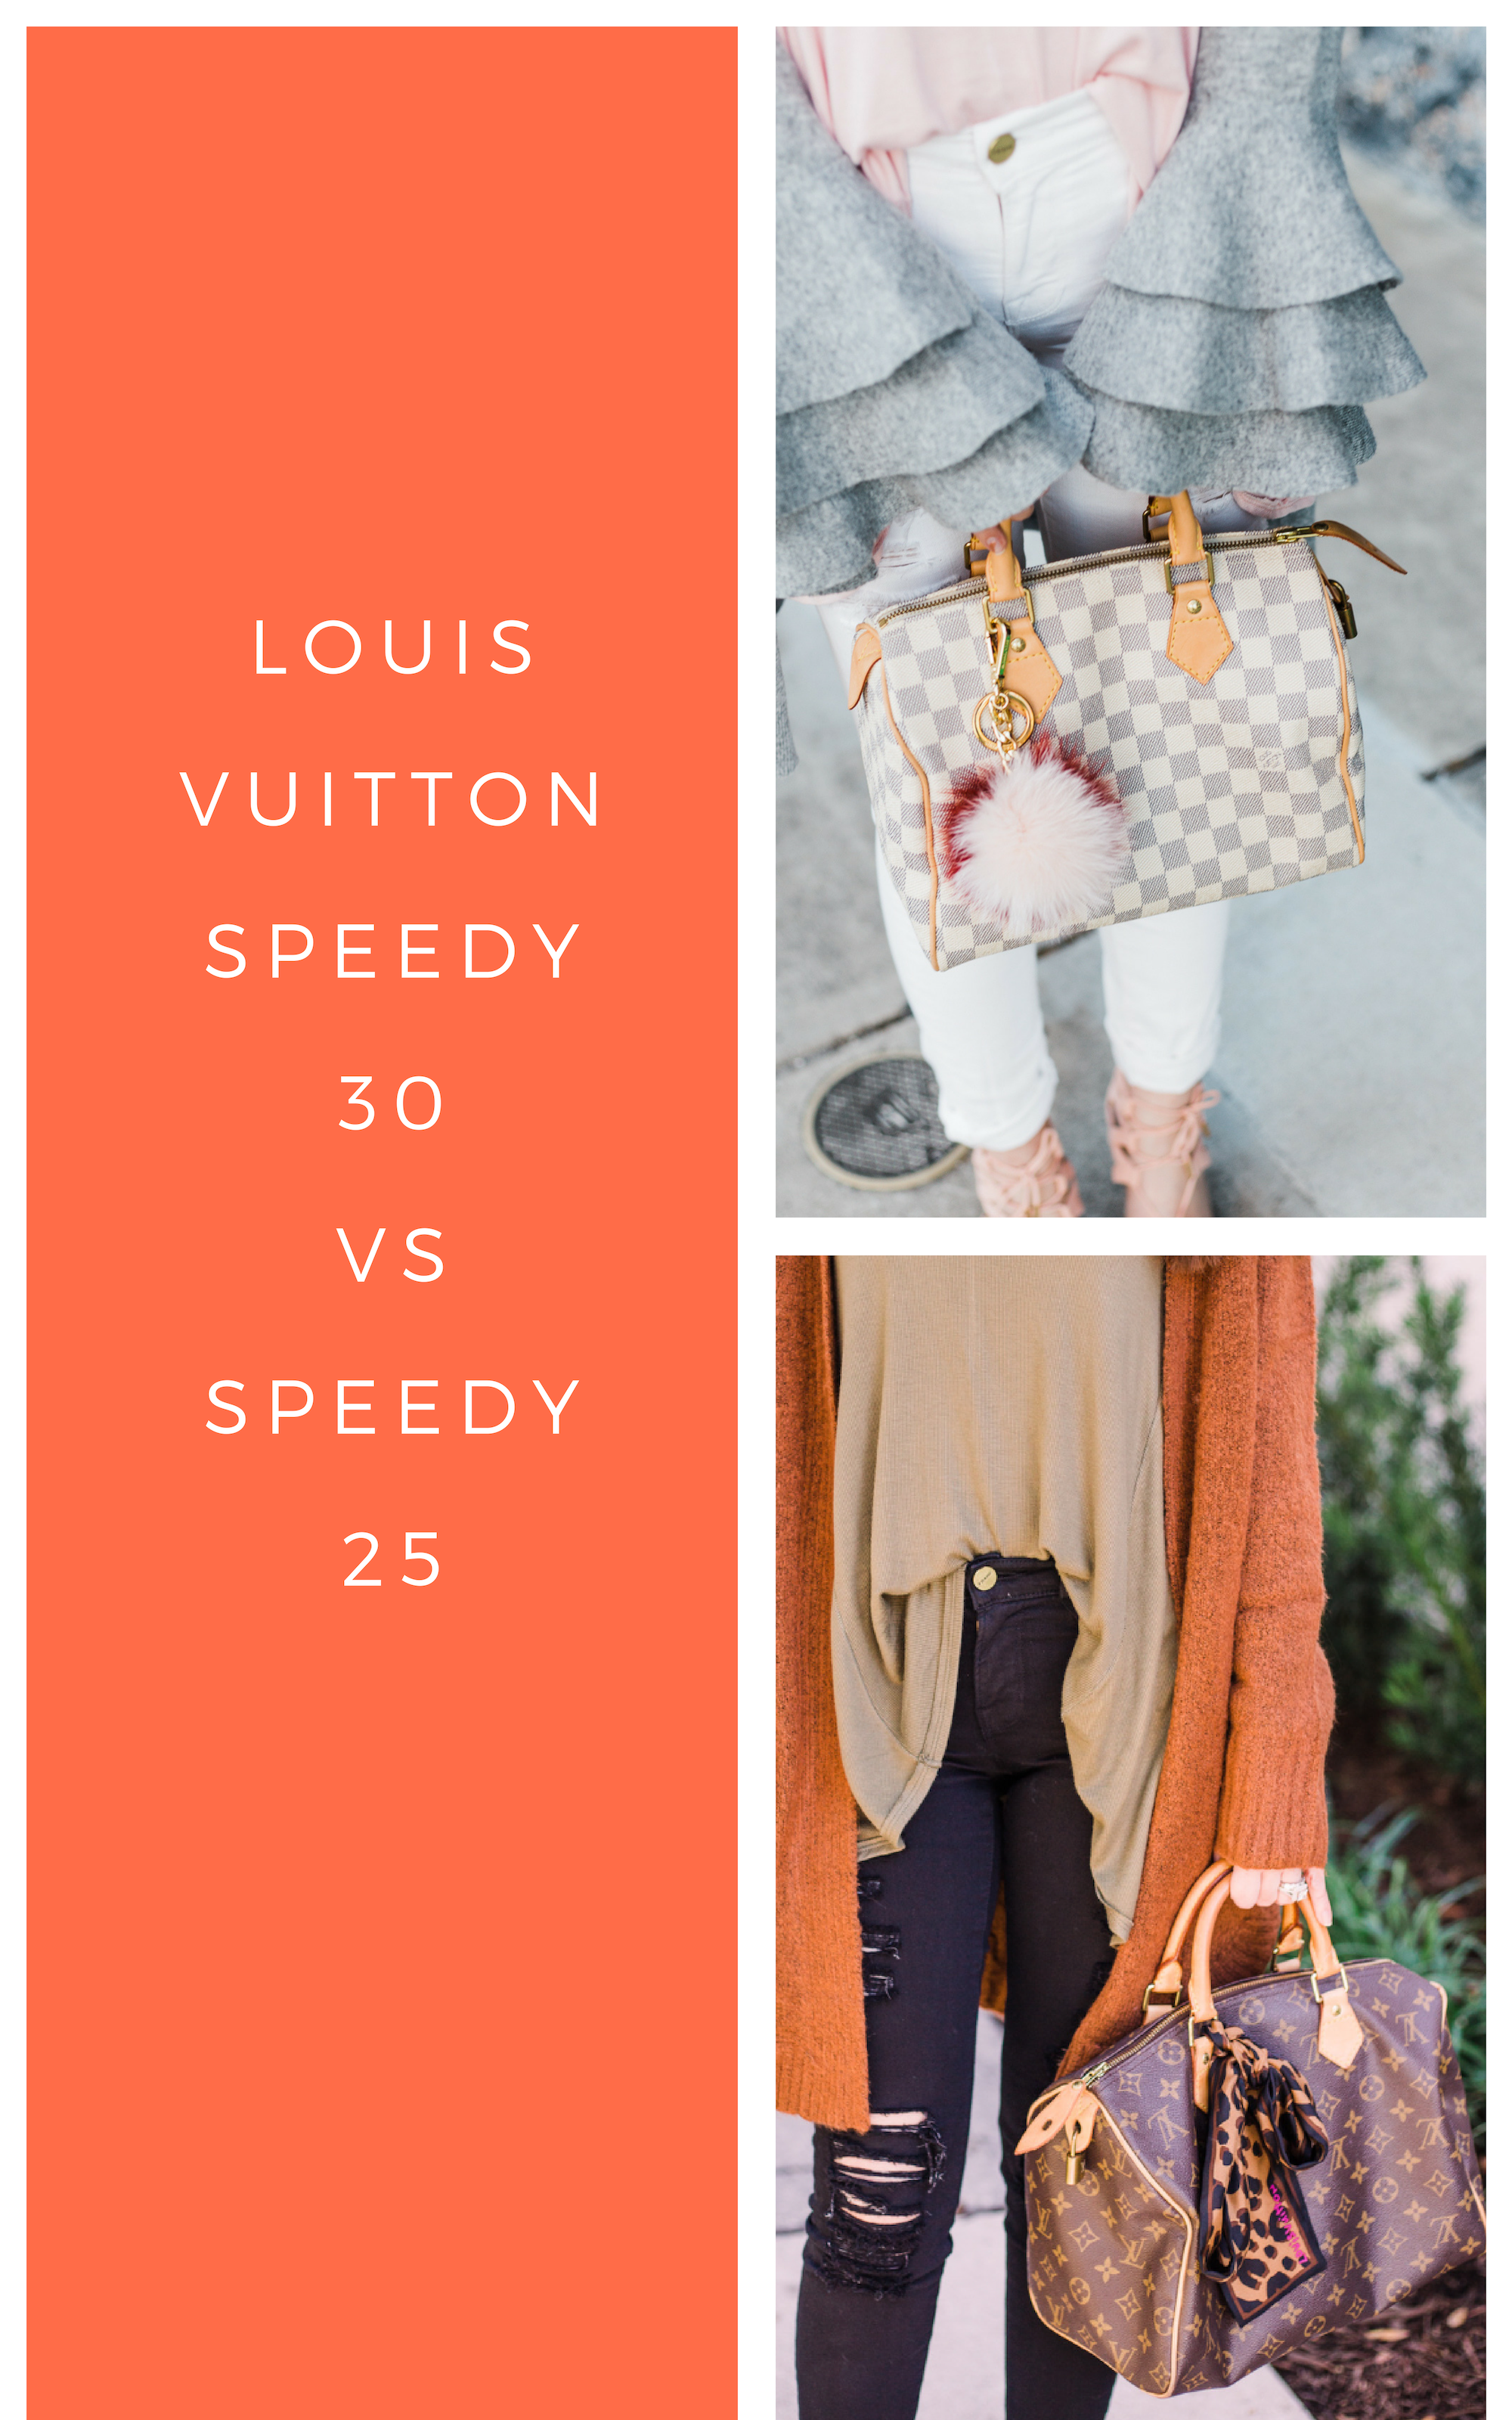 f4c3a745486a Louis Vuitton speedy 30 vs 25. Comparing the Louis Vuitton speedy 30 with the  Louis Vuitton speedy 25. Speedy monogram vs speedy damier azur and  everything ...